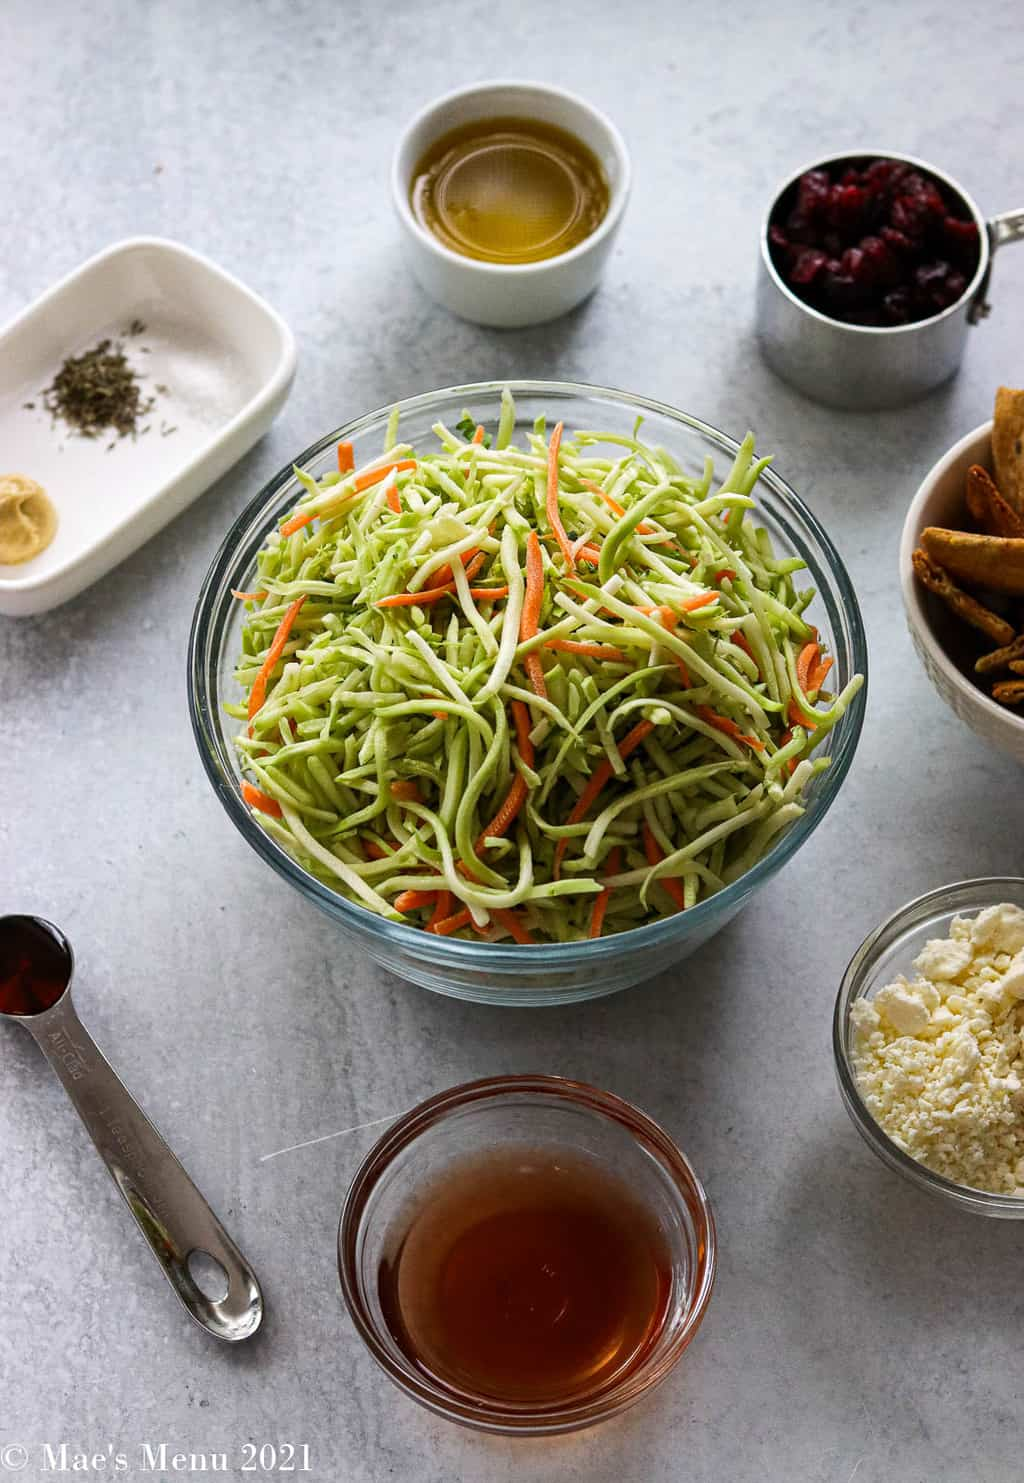 All of the ingredients for broccoli slaw salad